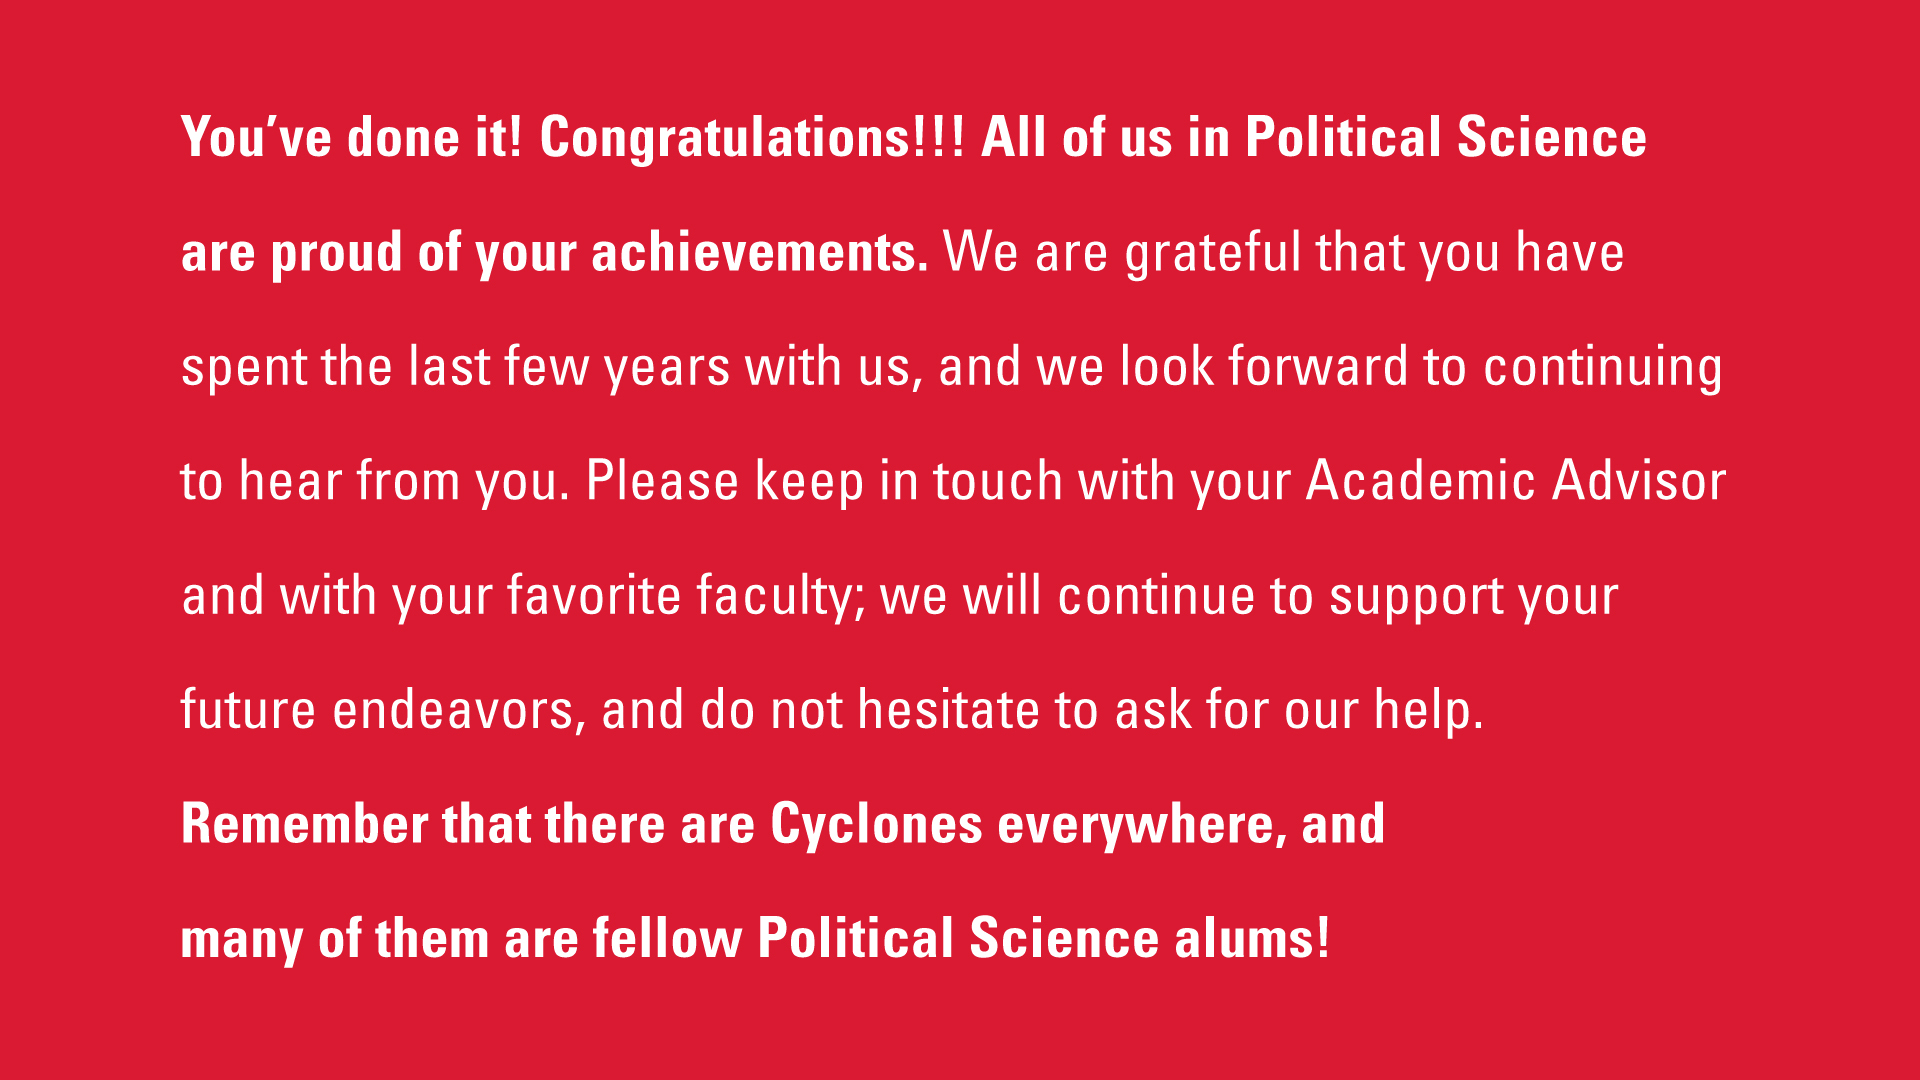 Political Science Congratulations